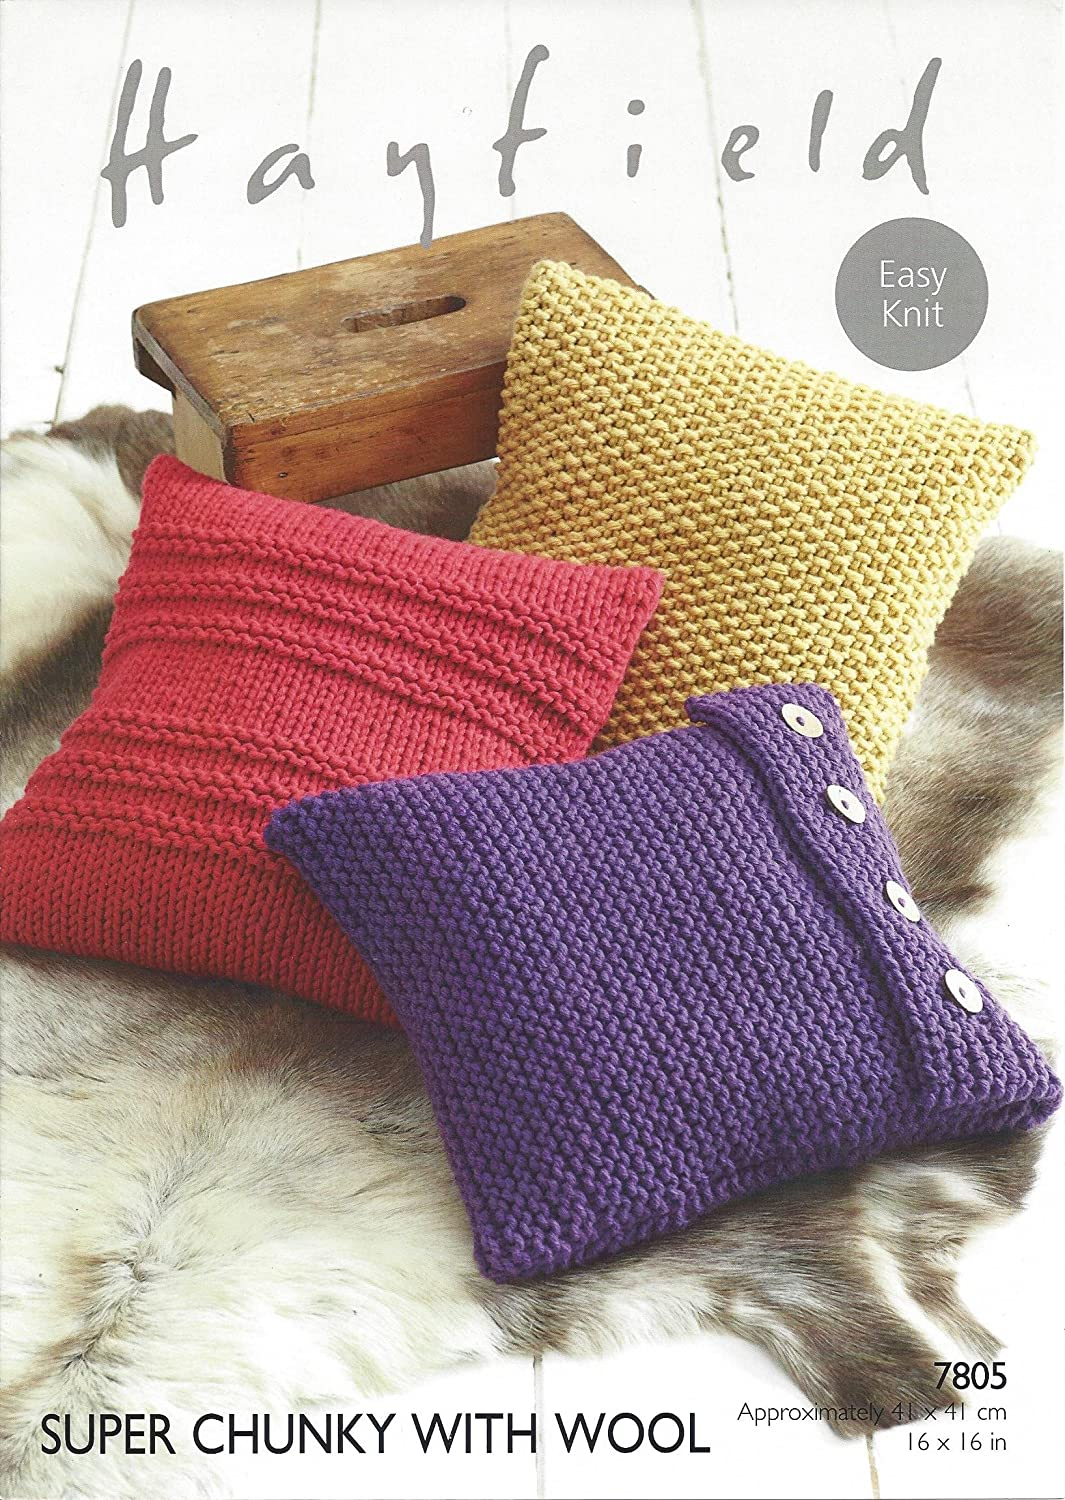 Sirdar/Hayfield Super Chunky 100g Knitting Pattern - 7805 Cushion ...